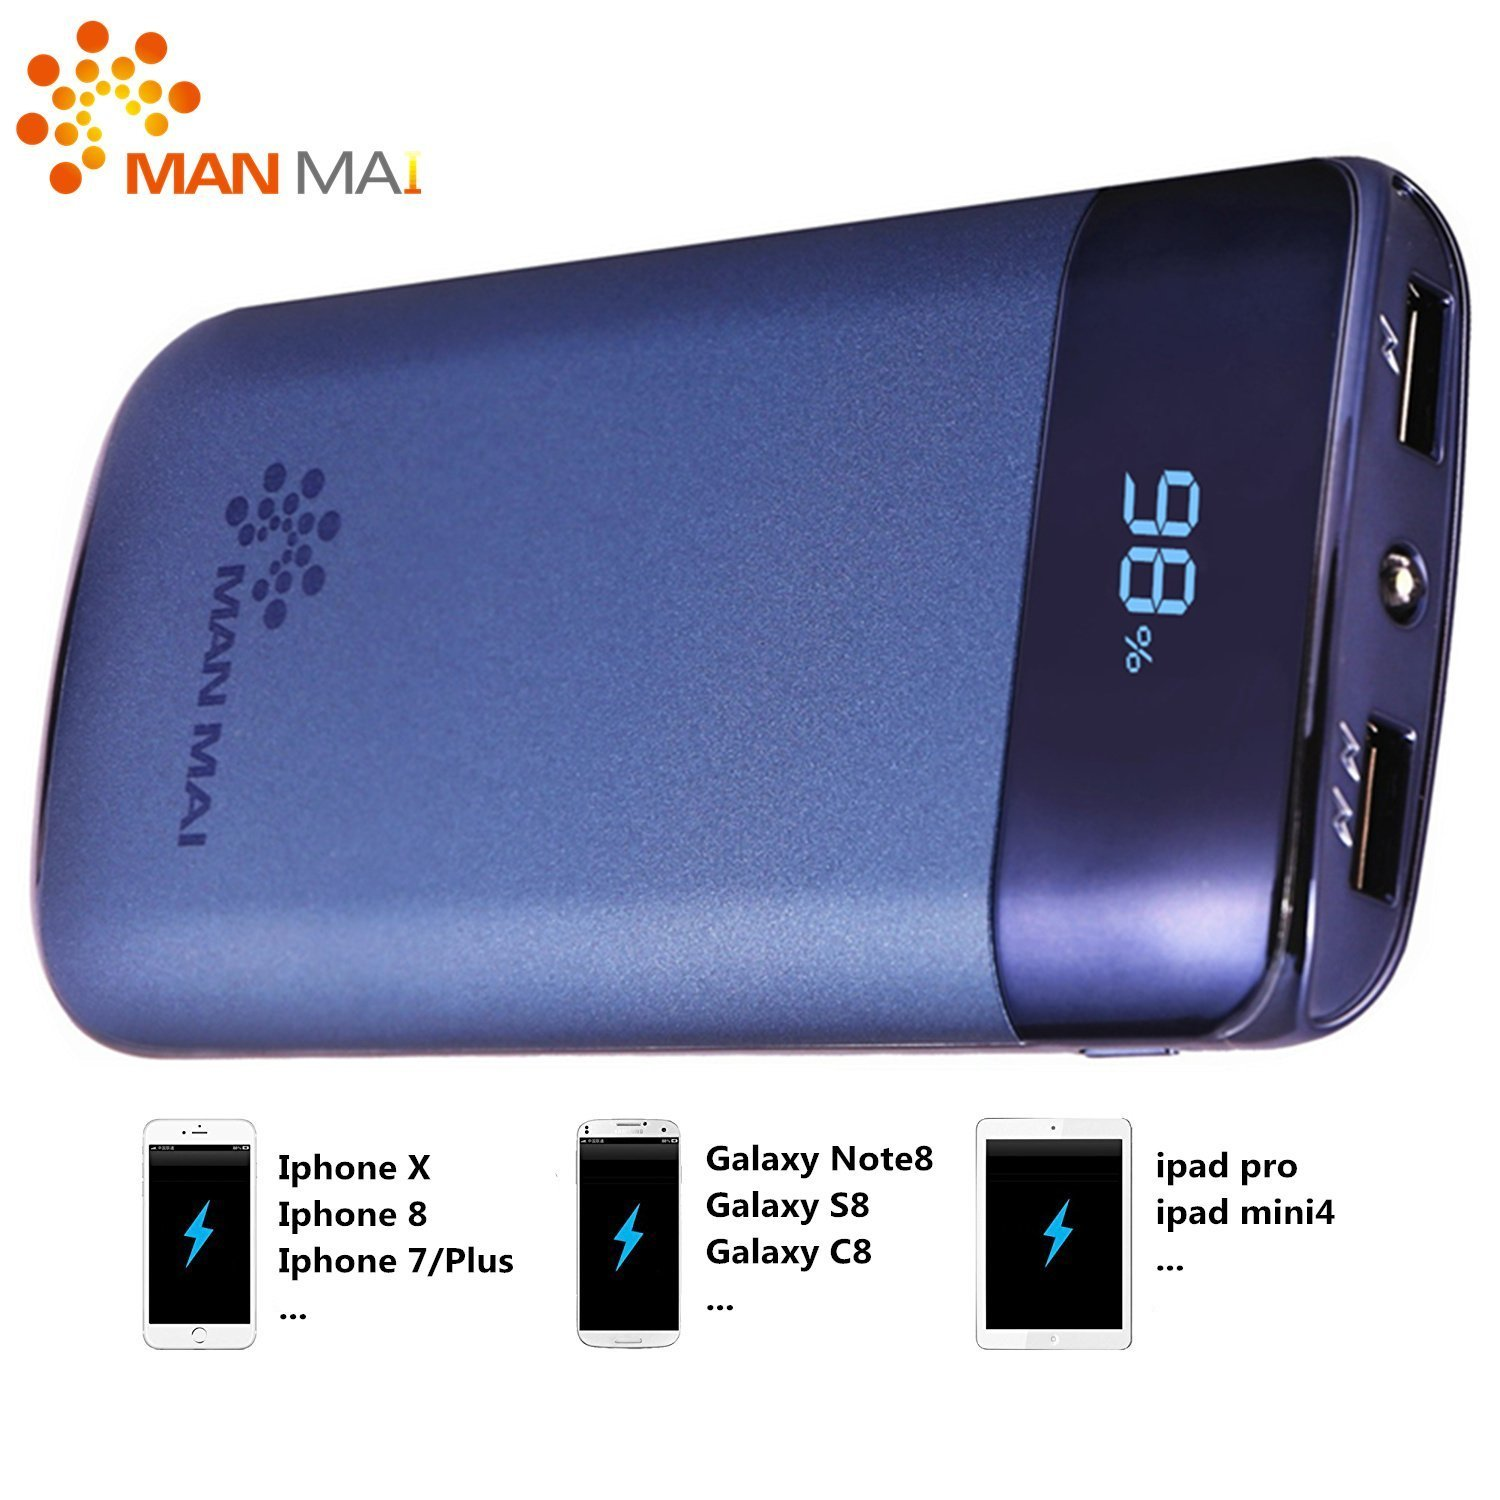 KUPPET 20000mAh Power Bank (Dual USB Port, 3.1A Total) External Portable Charger Battery Pack Portable Charger with LED Flashlight for iPhone 7, iPhone 8,iphone X,iPad Pro, Galaxy S8 Note8 and More